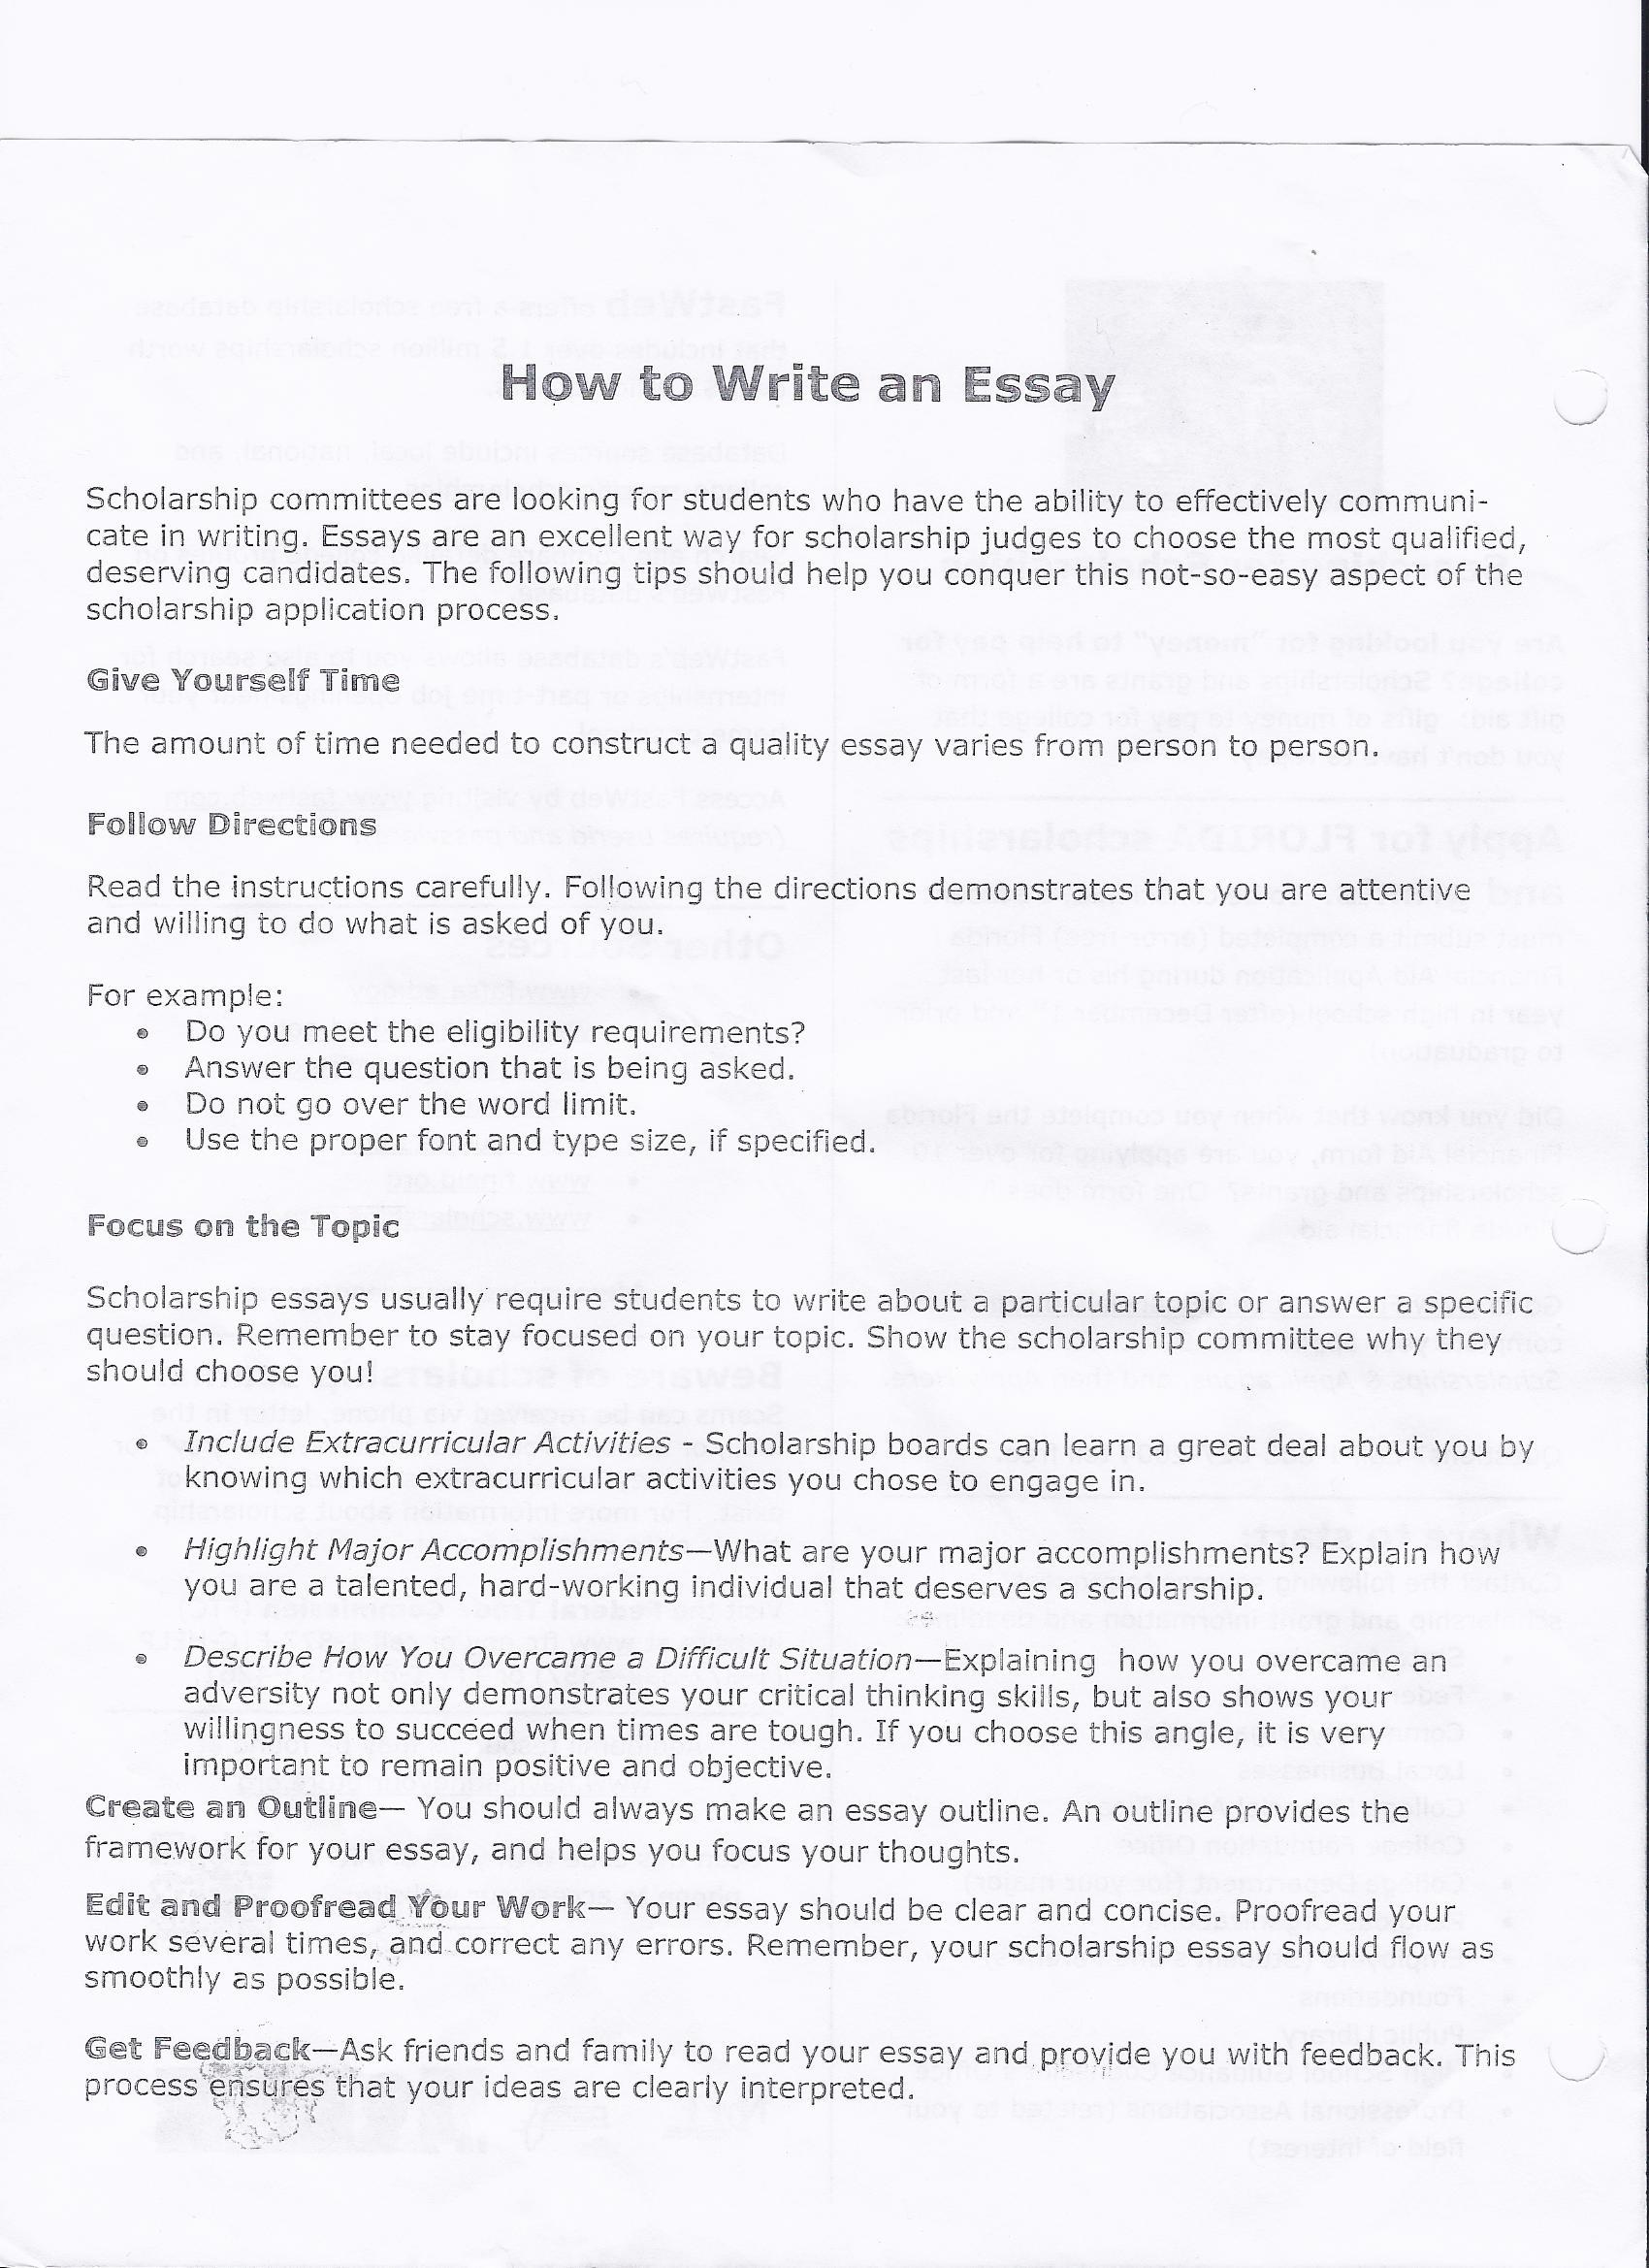 Essay On Television With Quotations For 10th Class